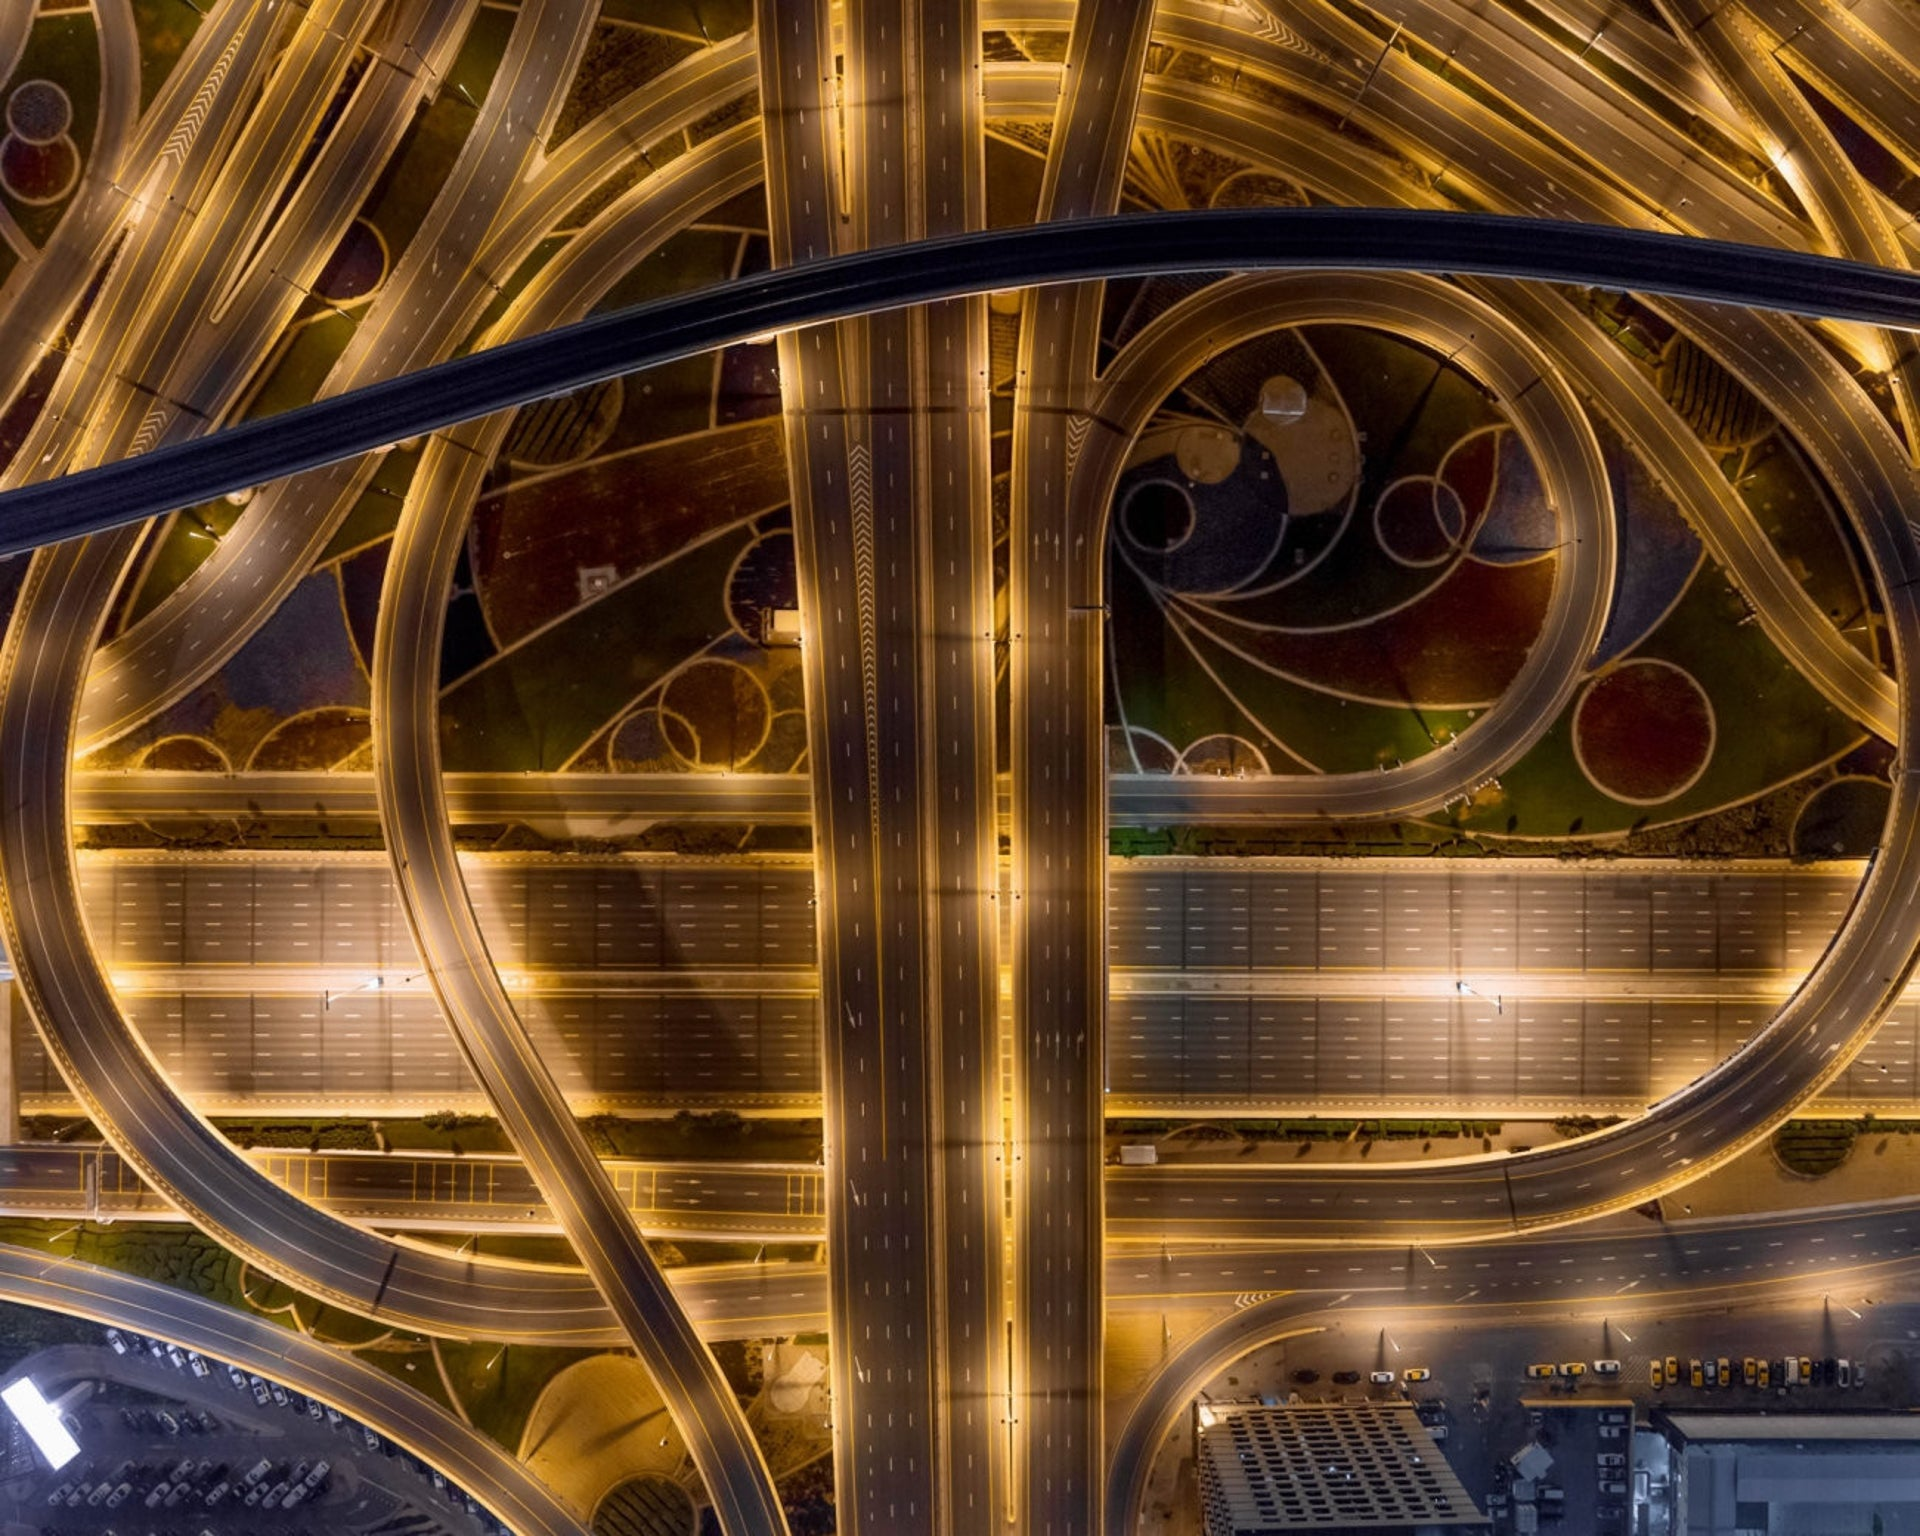 Empty highways in Dubai during the coronavirus pandemic, a photo by Bachir Moukarzel that featured in the 2020 International Siena Photo Awards.